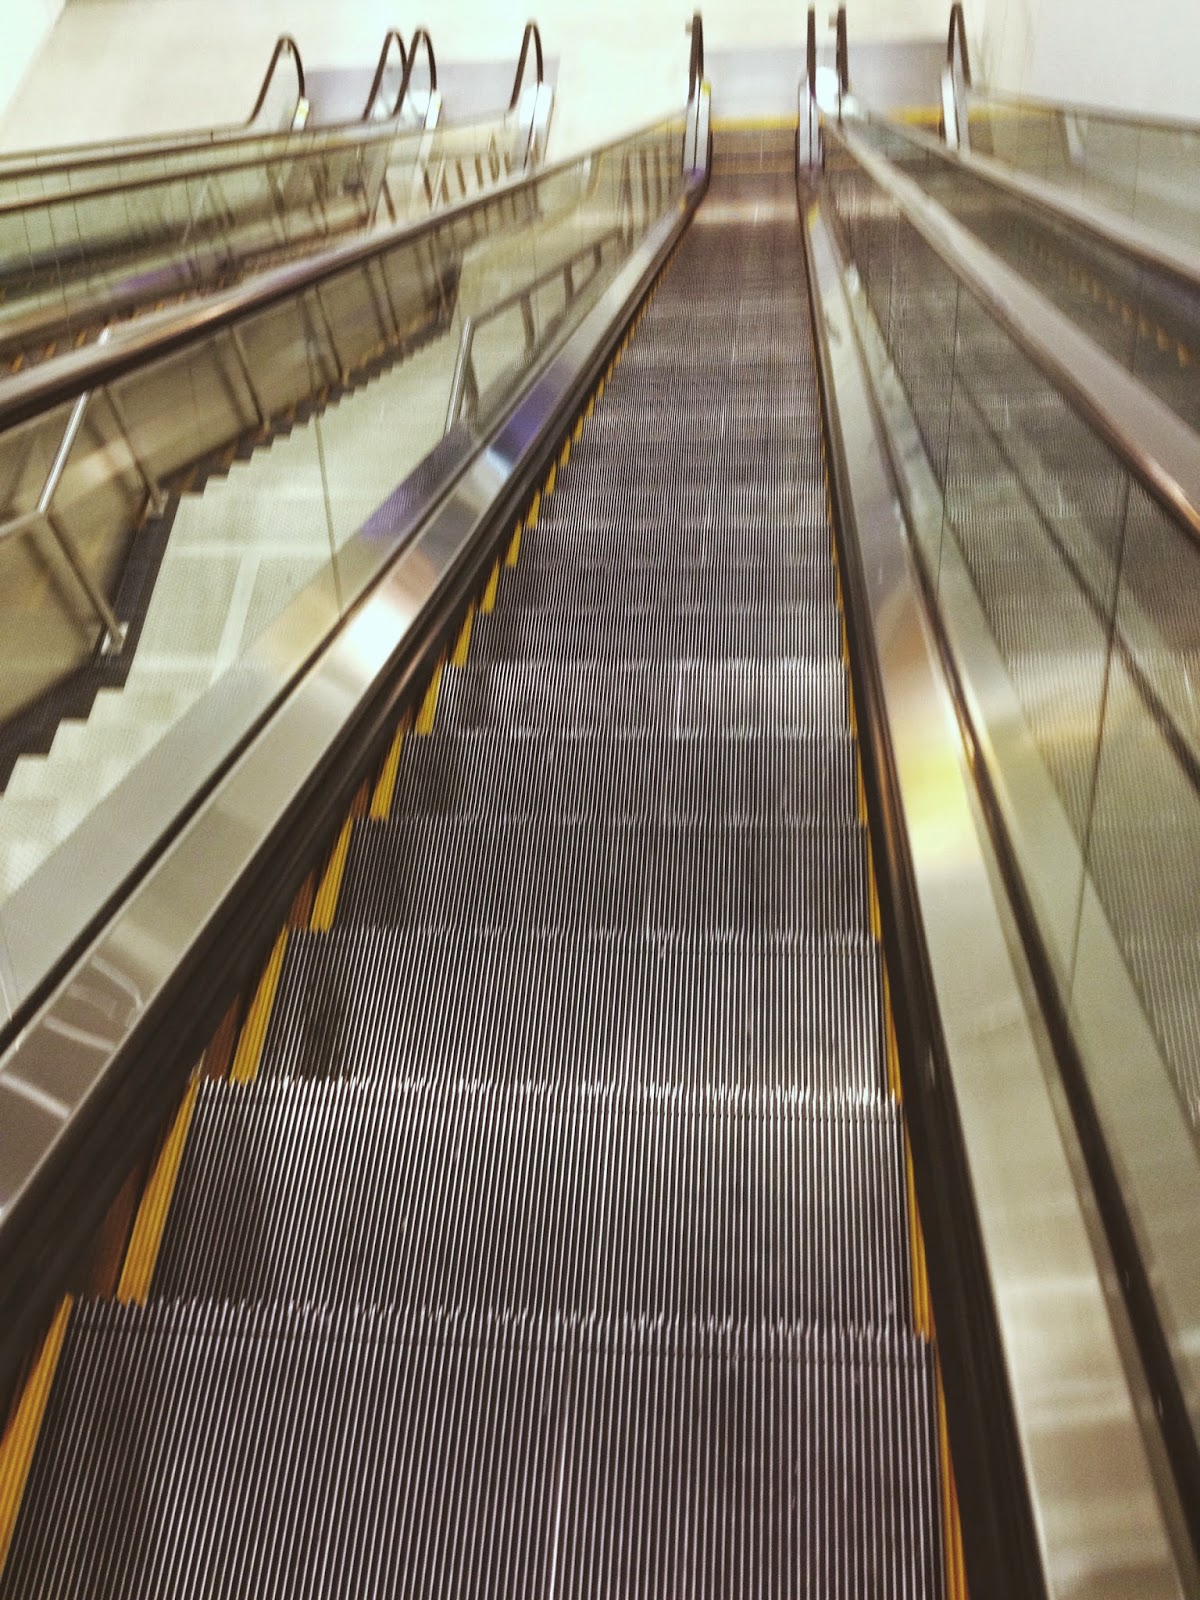 Escalators in Washington D.C. airport